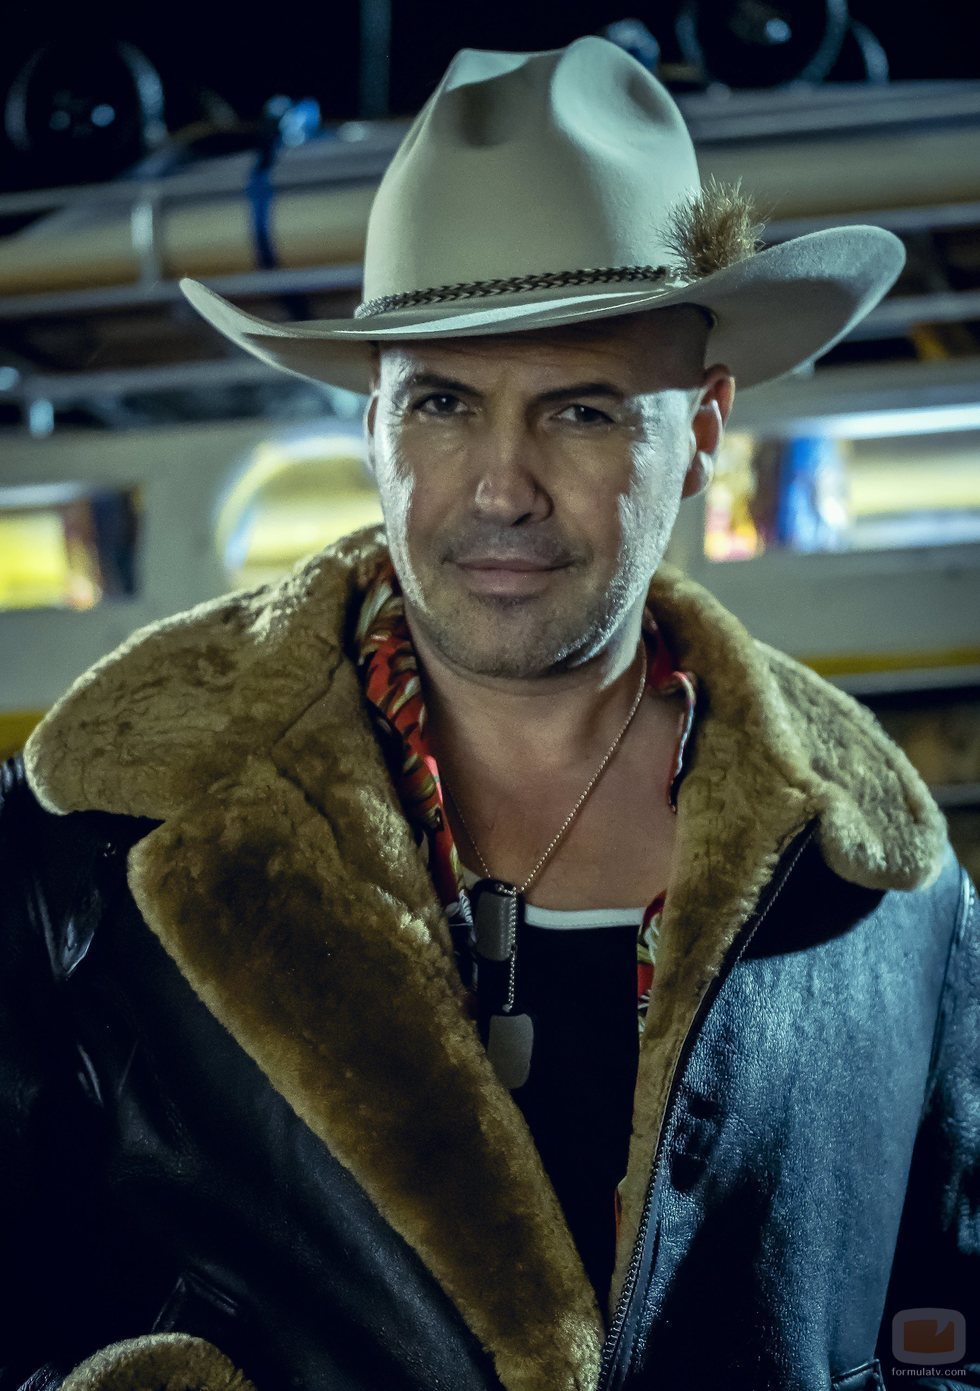 Billy Zane en 'Curfew (Toque de queda)'